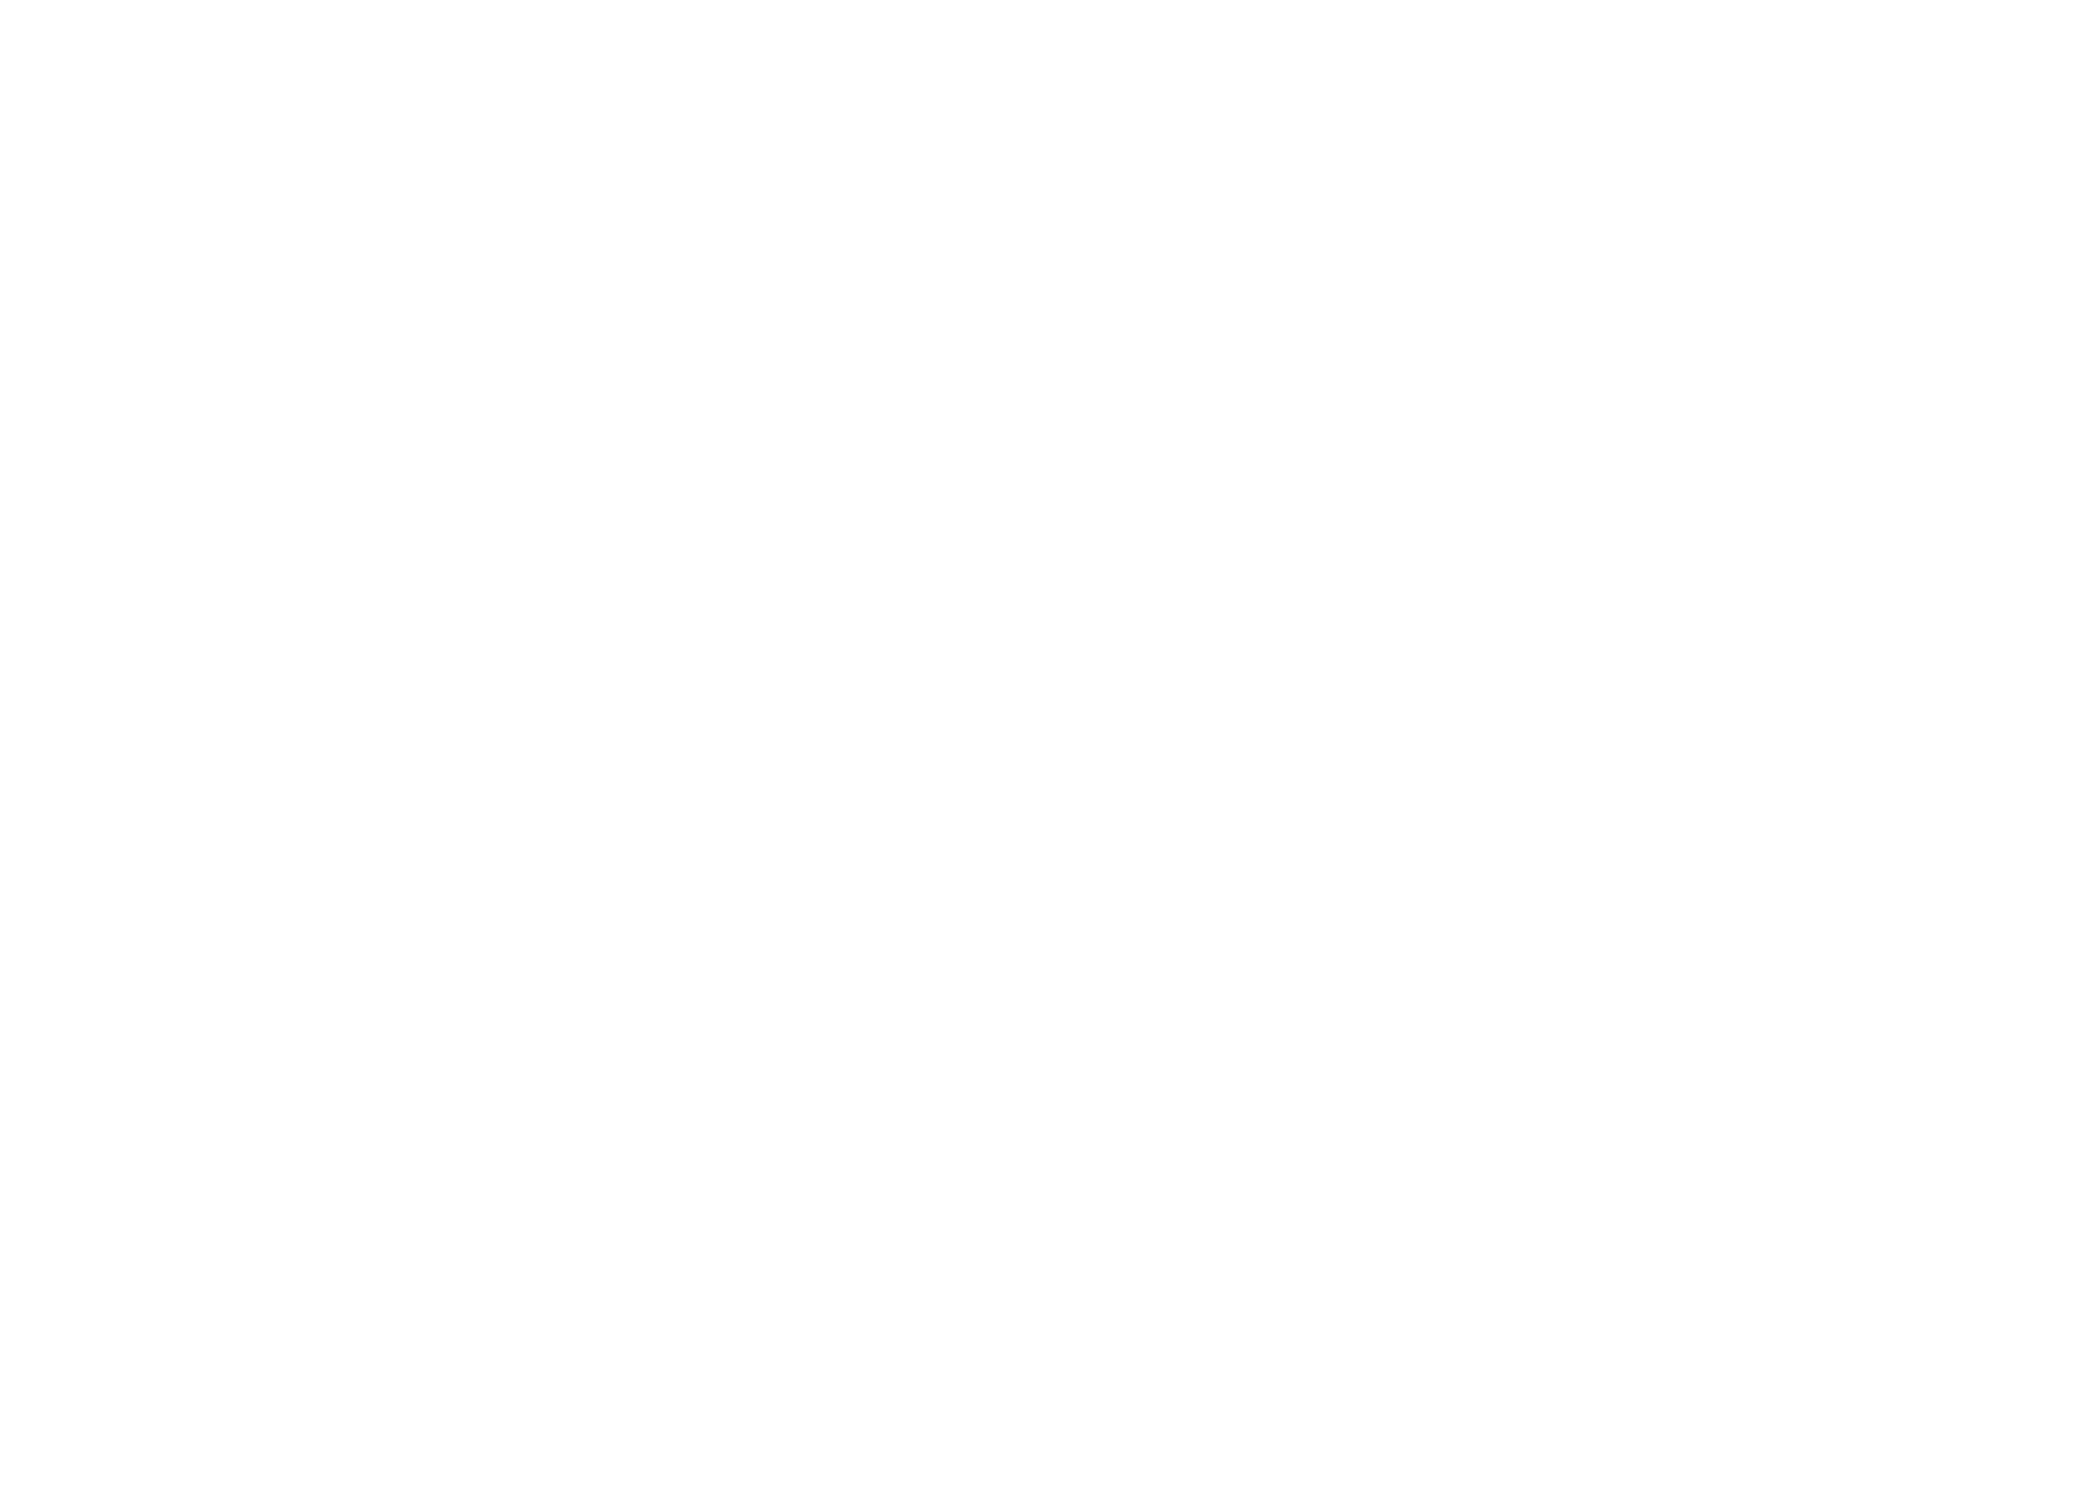 Todd Snyder's Racquet Club